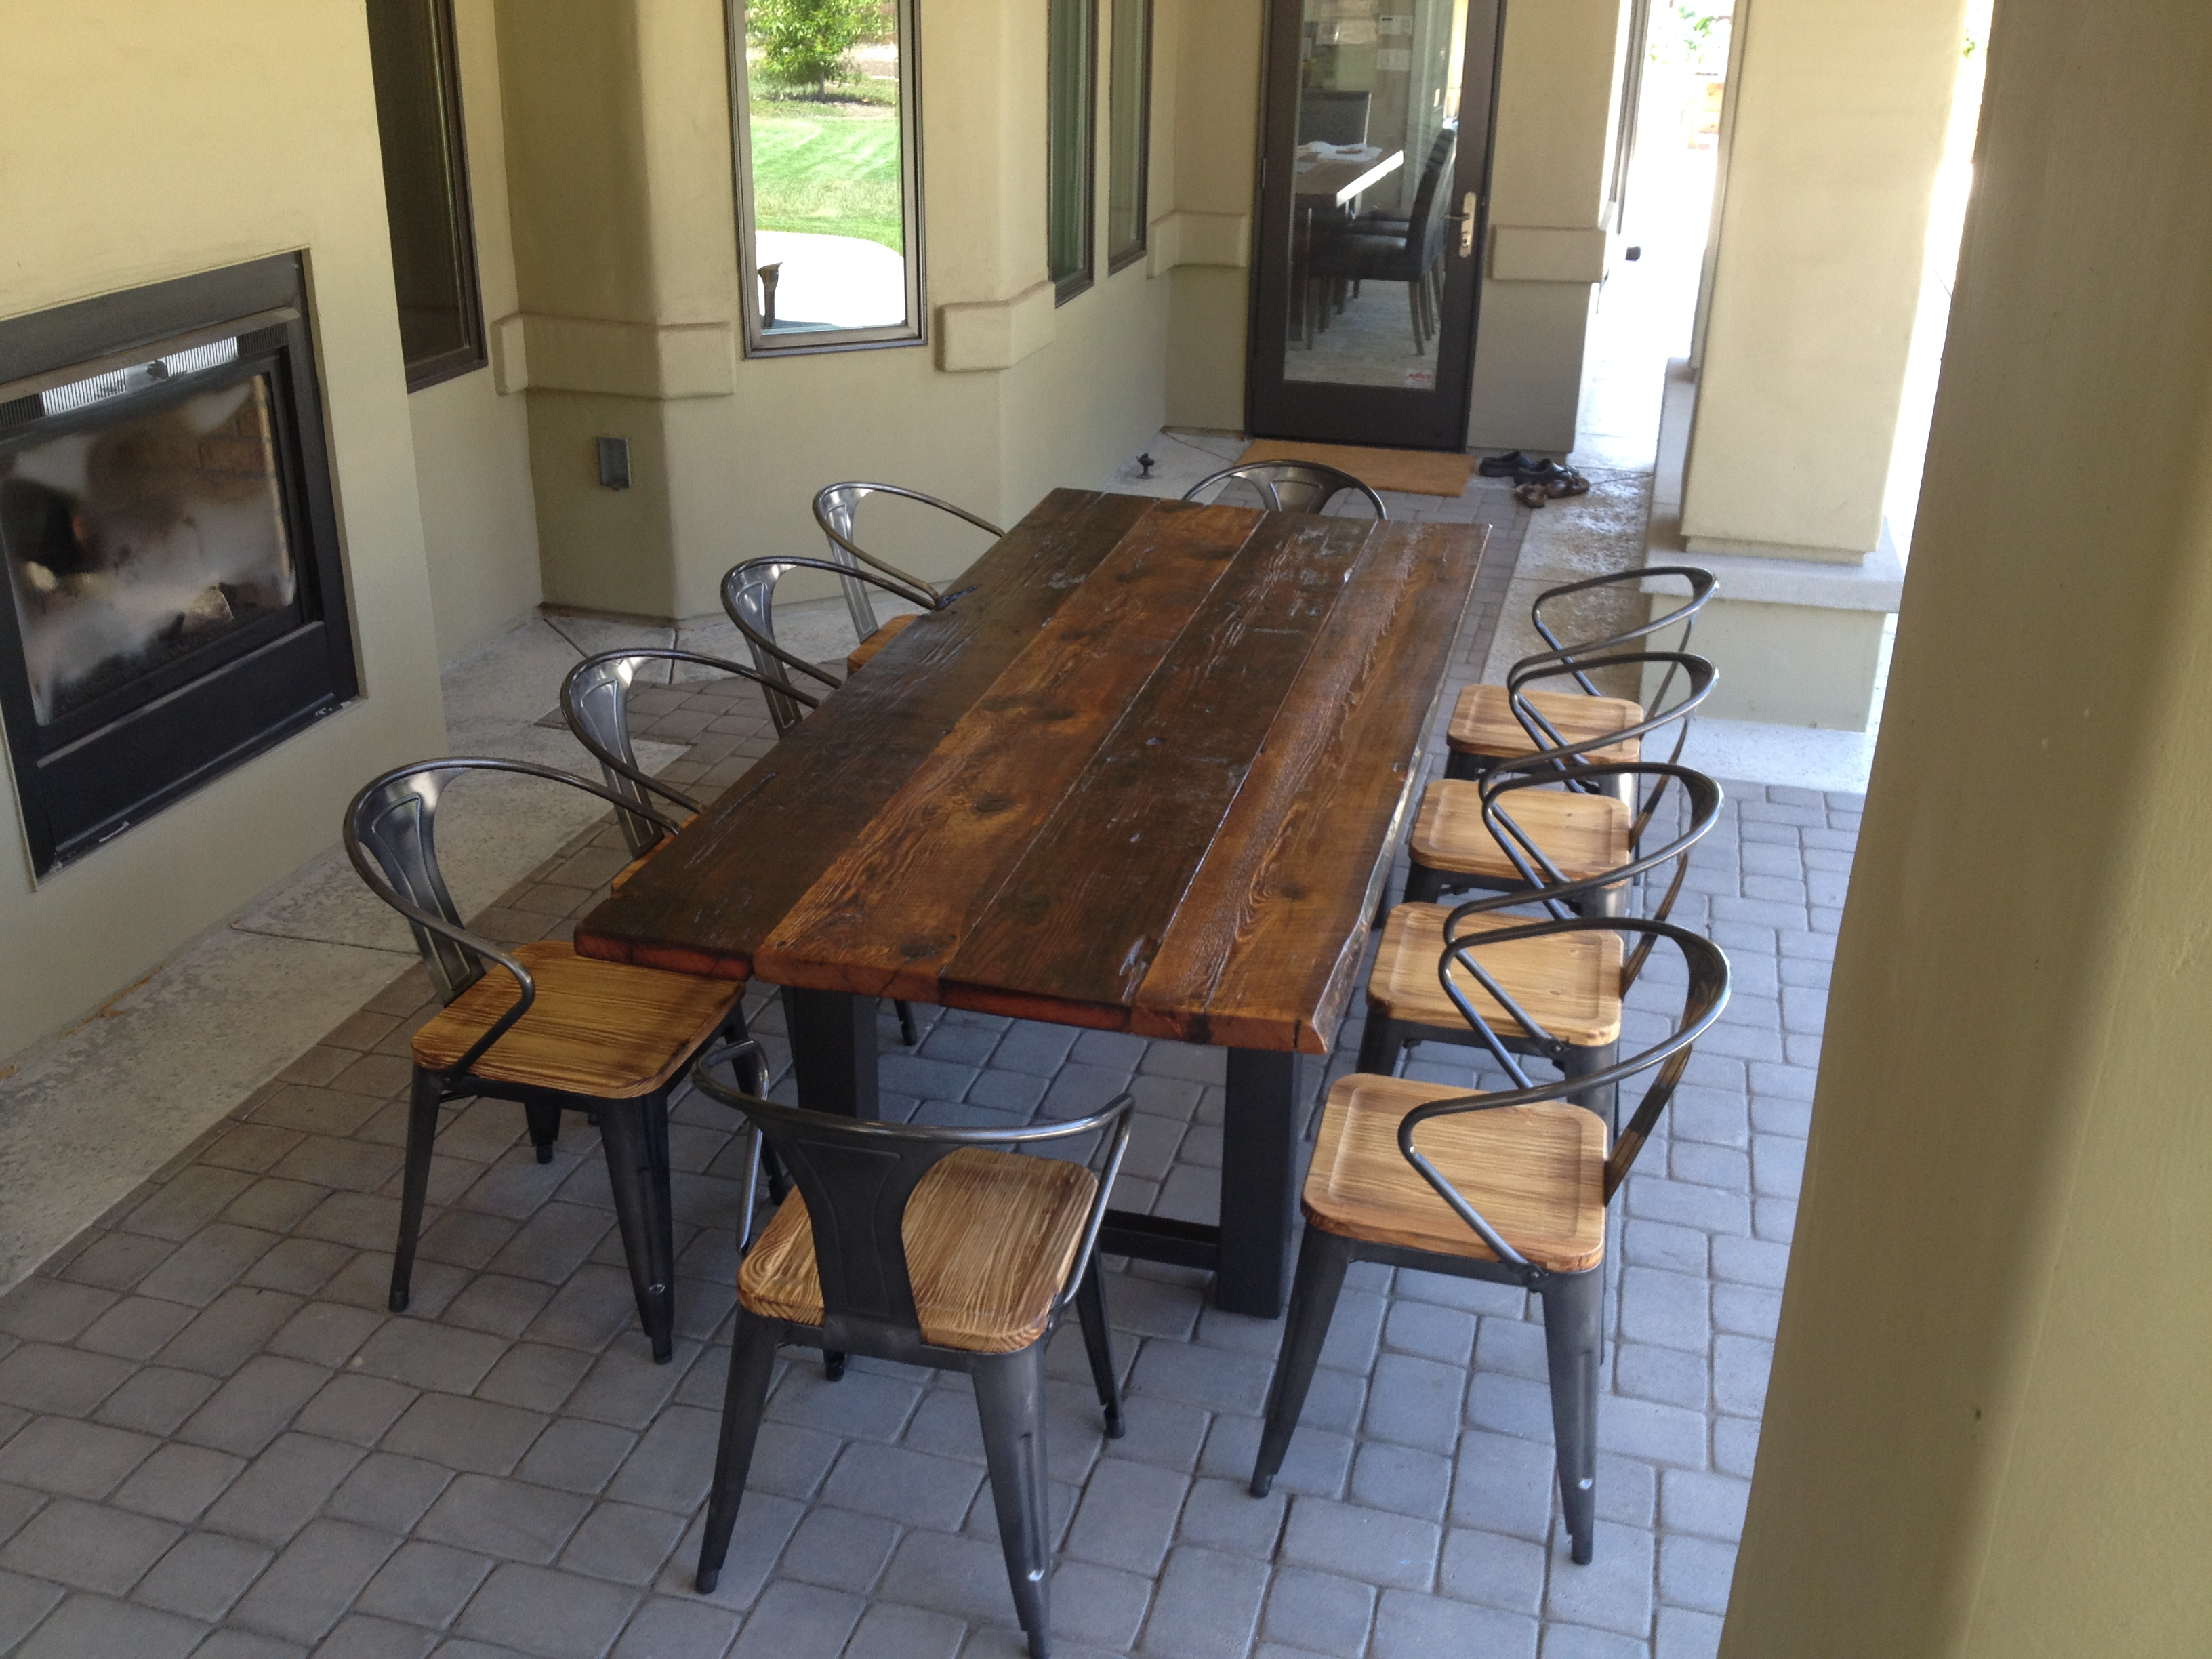 This Reclaimed Wood And Steel Outdoor Dining Table Was Custom Built To 95x40